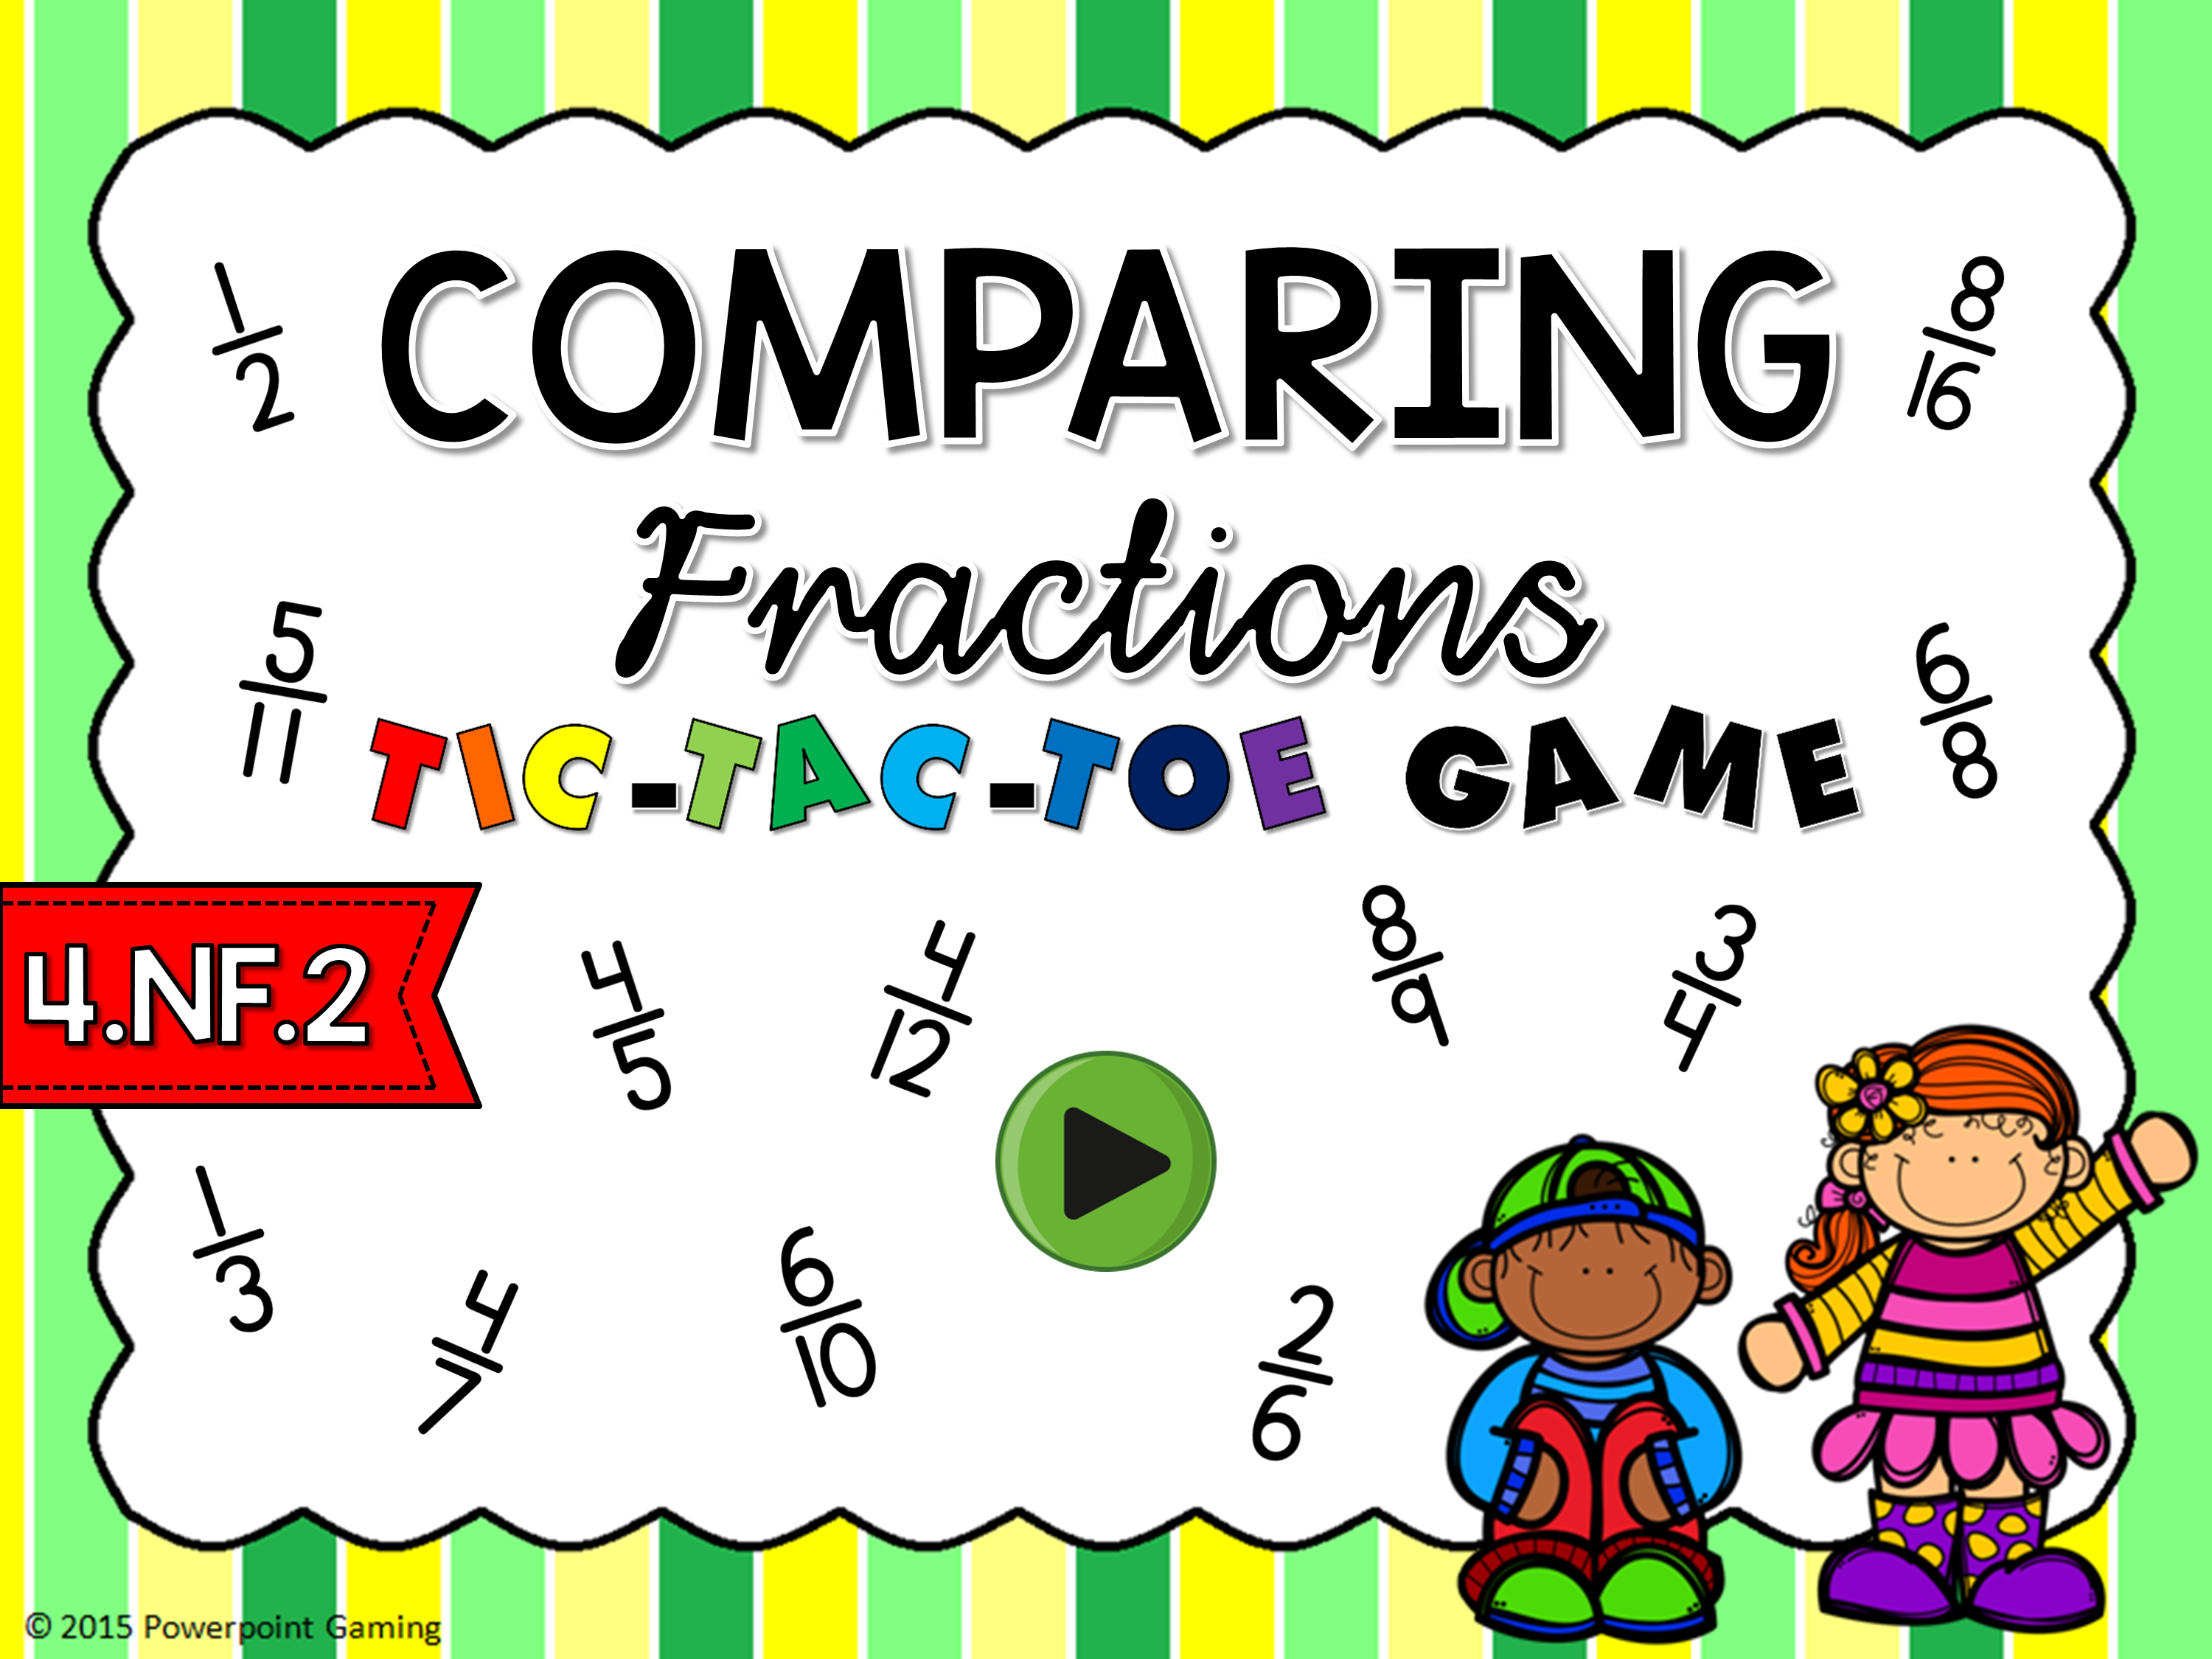 Comparing Fractions Tic-Tac-Toe Game